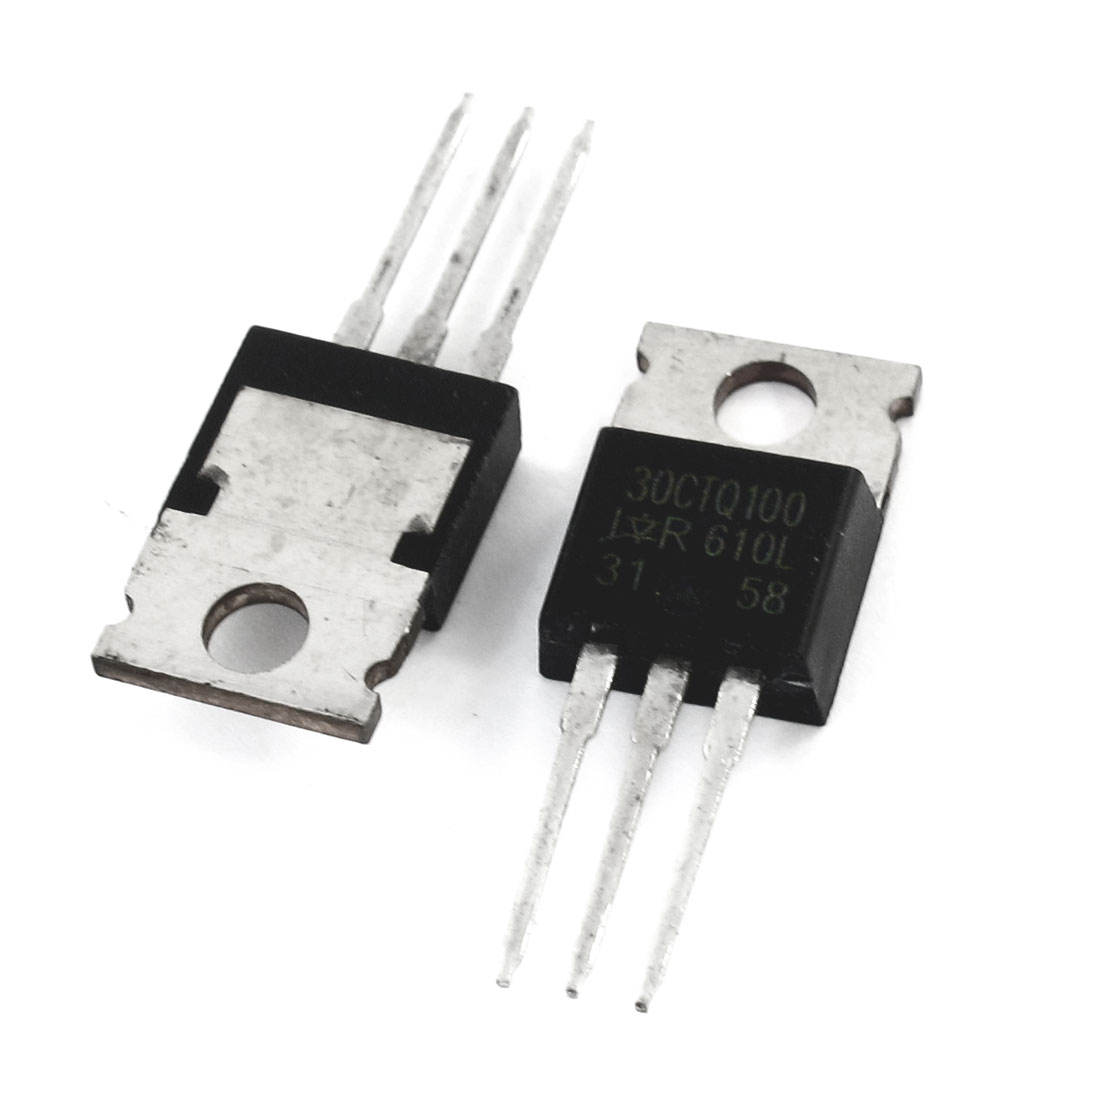 2 Pcs 30CTQ100 100V 30Amp High Switching Speed Silicon Transistor